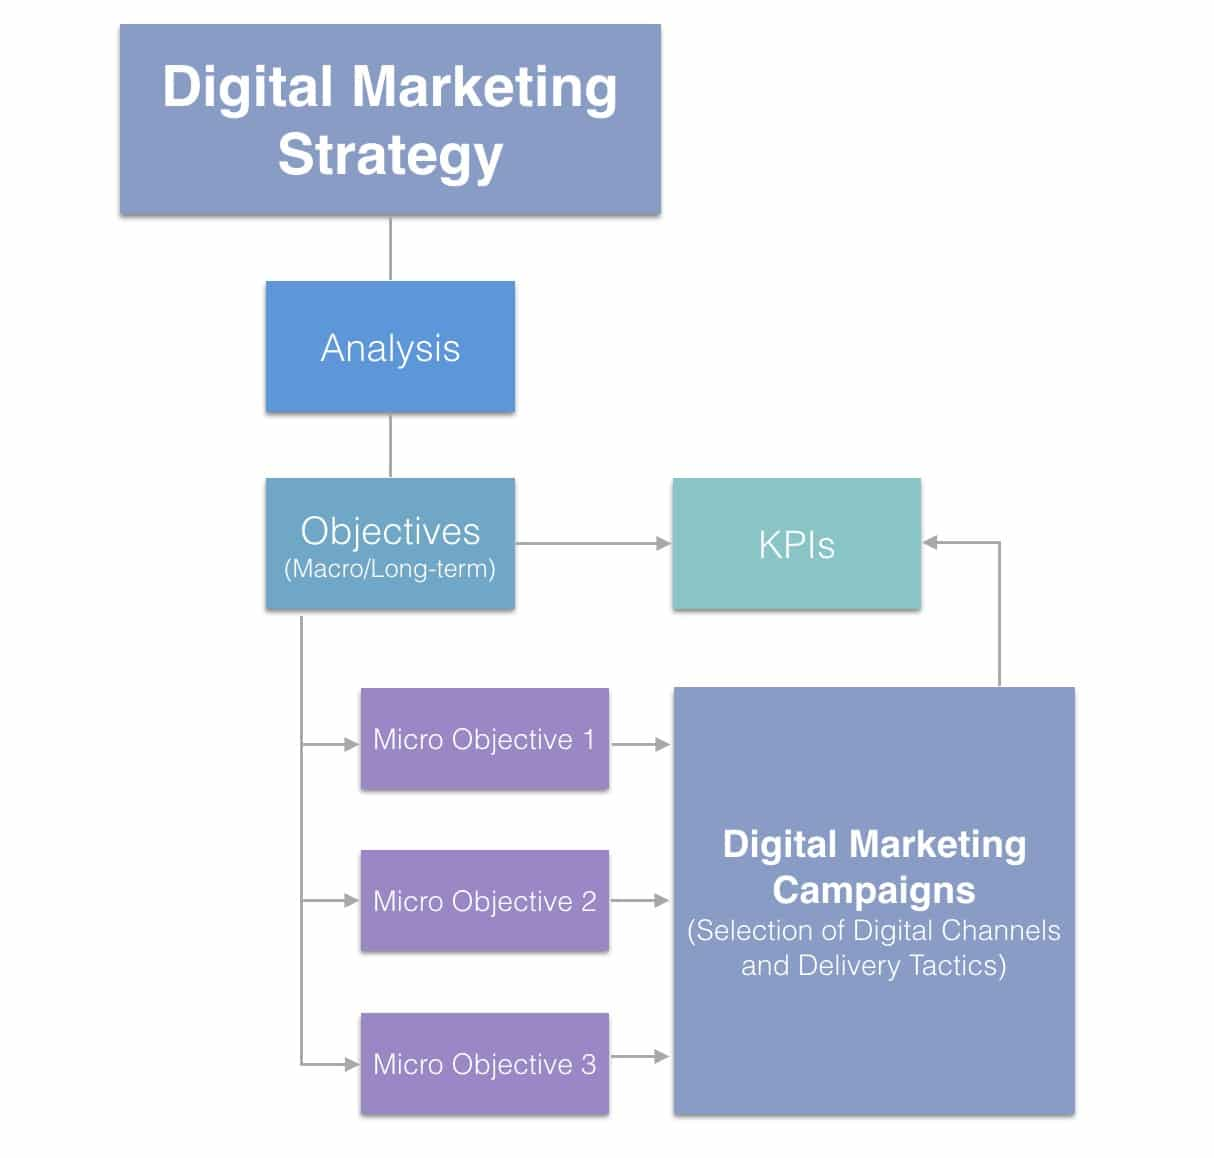 contiki tours marketing strategy analysis View michael grierson's profile on linkedin - general digital marketing strategy - analysis of marketing performance marketing manager value tours.